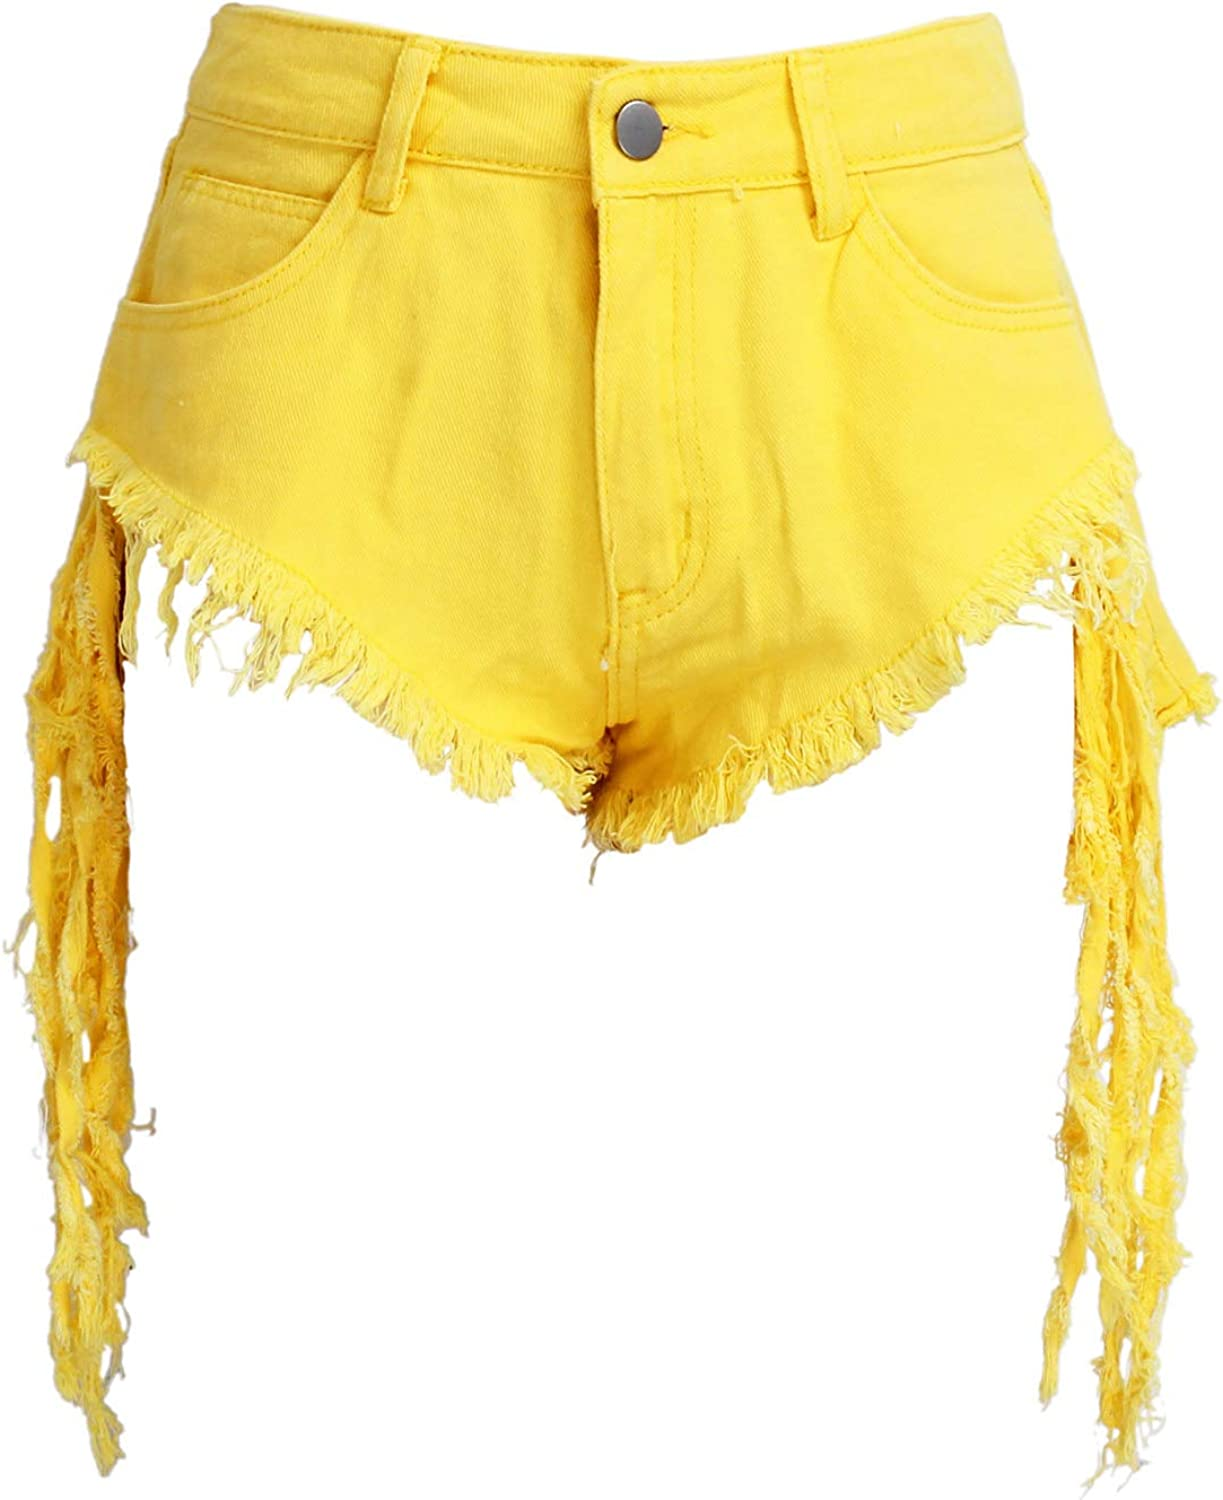 Frayed Raw Hemline Ripped Tassels Jeans Short Pants Club Wear ZFCGEE High Waisted Denim Shorts for Women